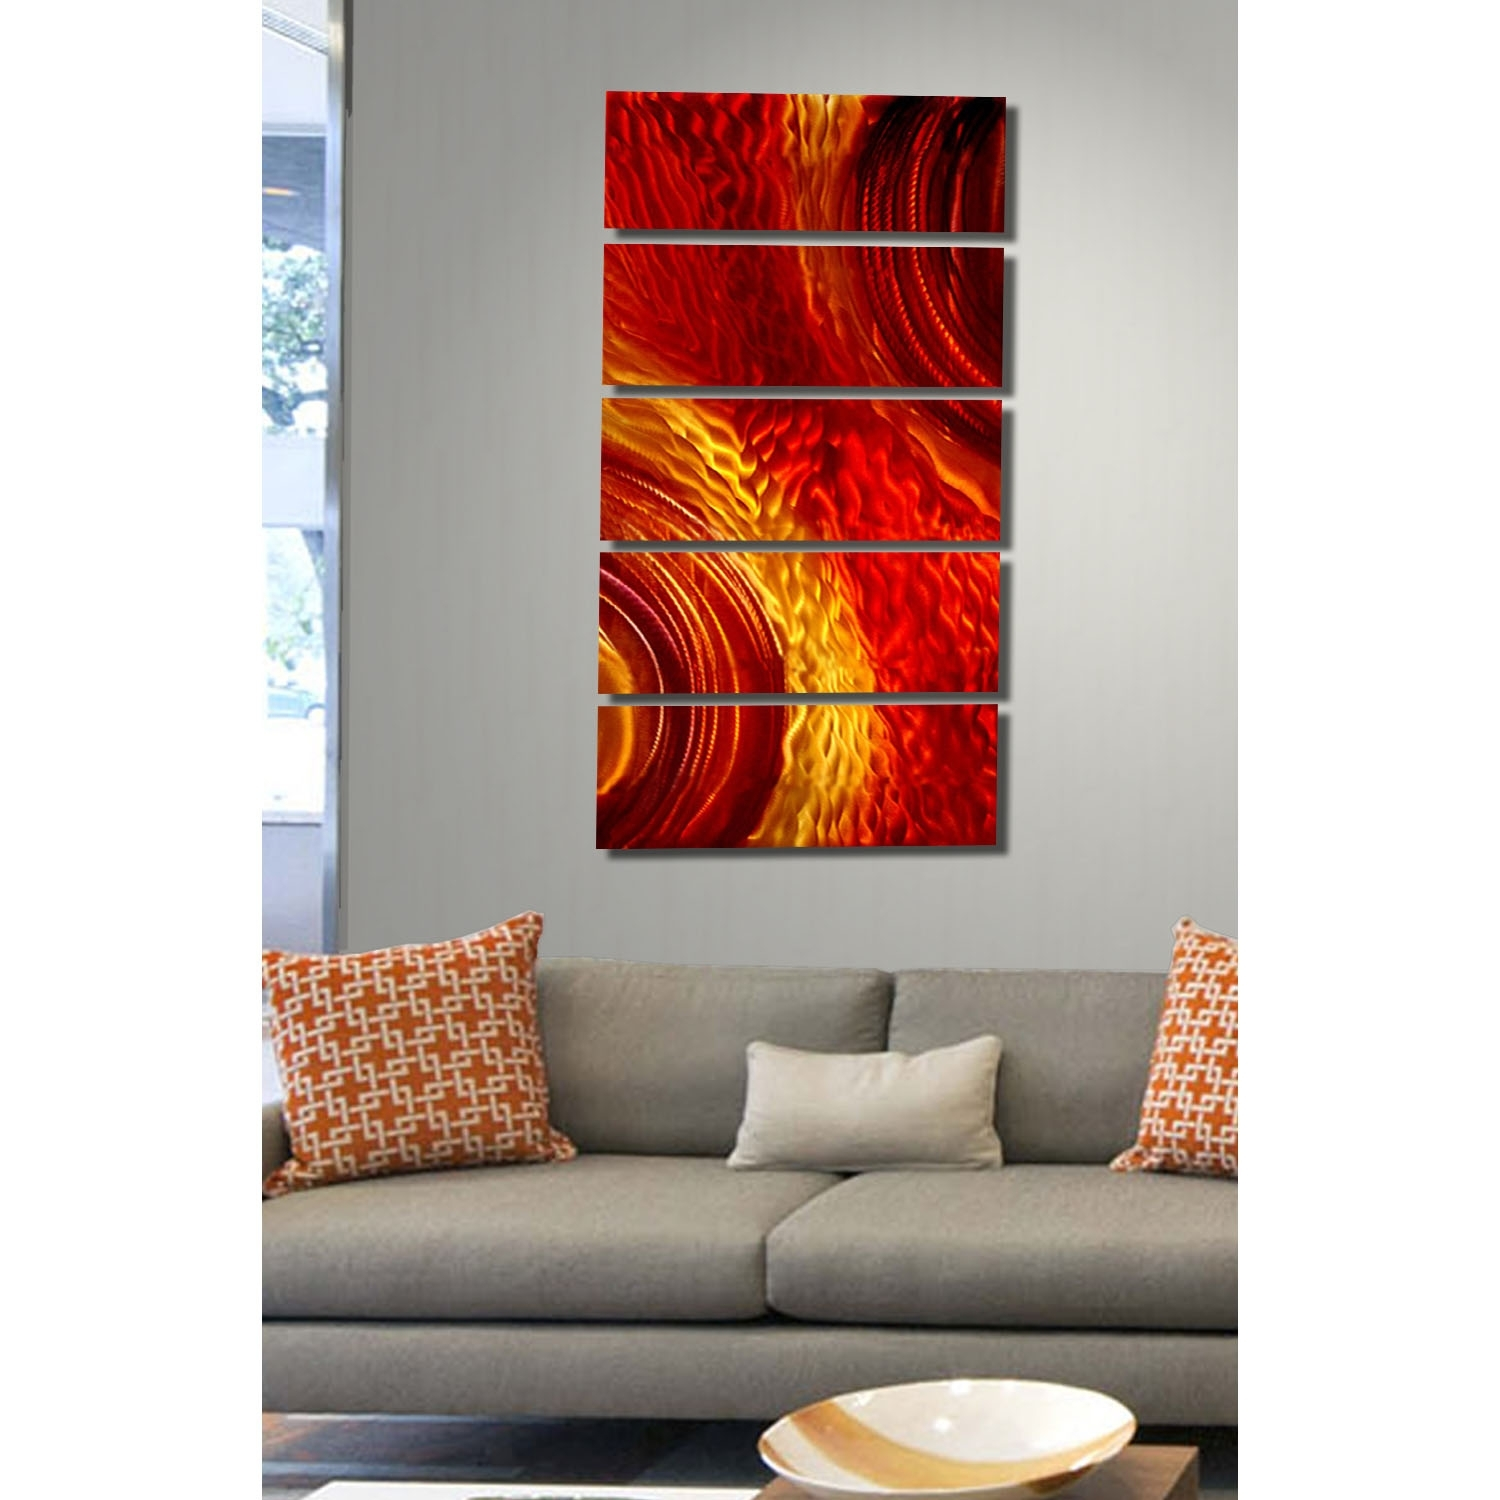 Magma – Red And Gold Metal Wall Art – 5 Panel Wall Décorjon With Regard To Best And Newest Orange Wall Art (View 14 of 20)